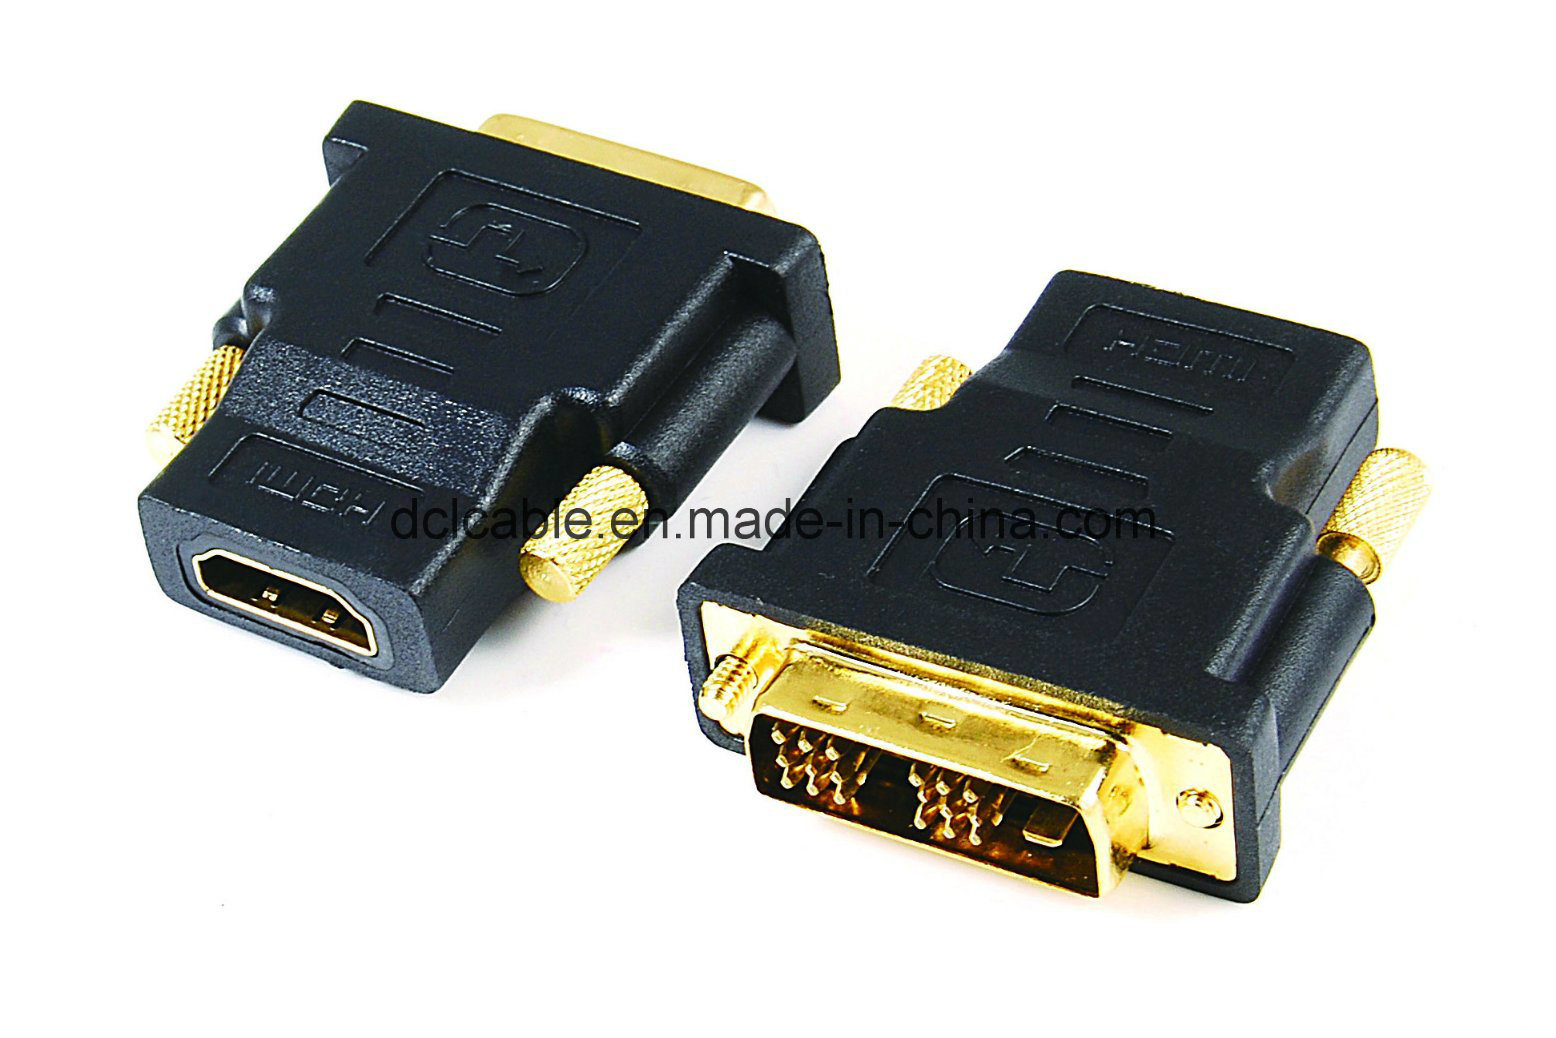 DVI (18+1) Male to HDMI Female Adapter